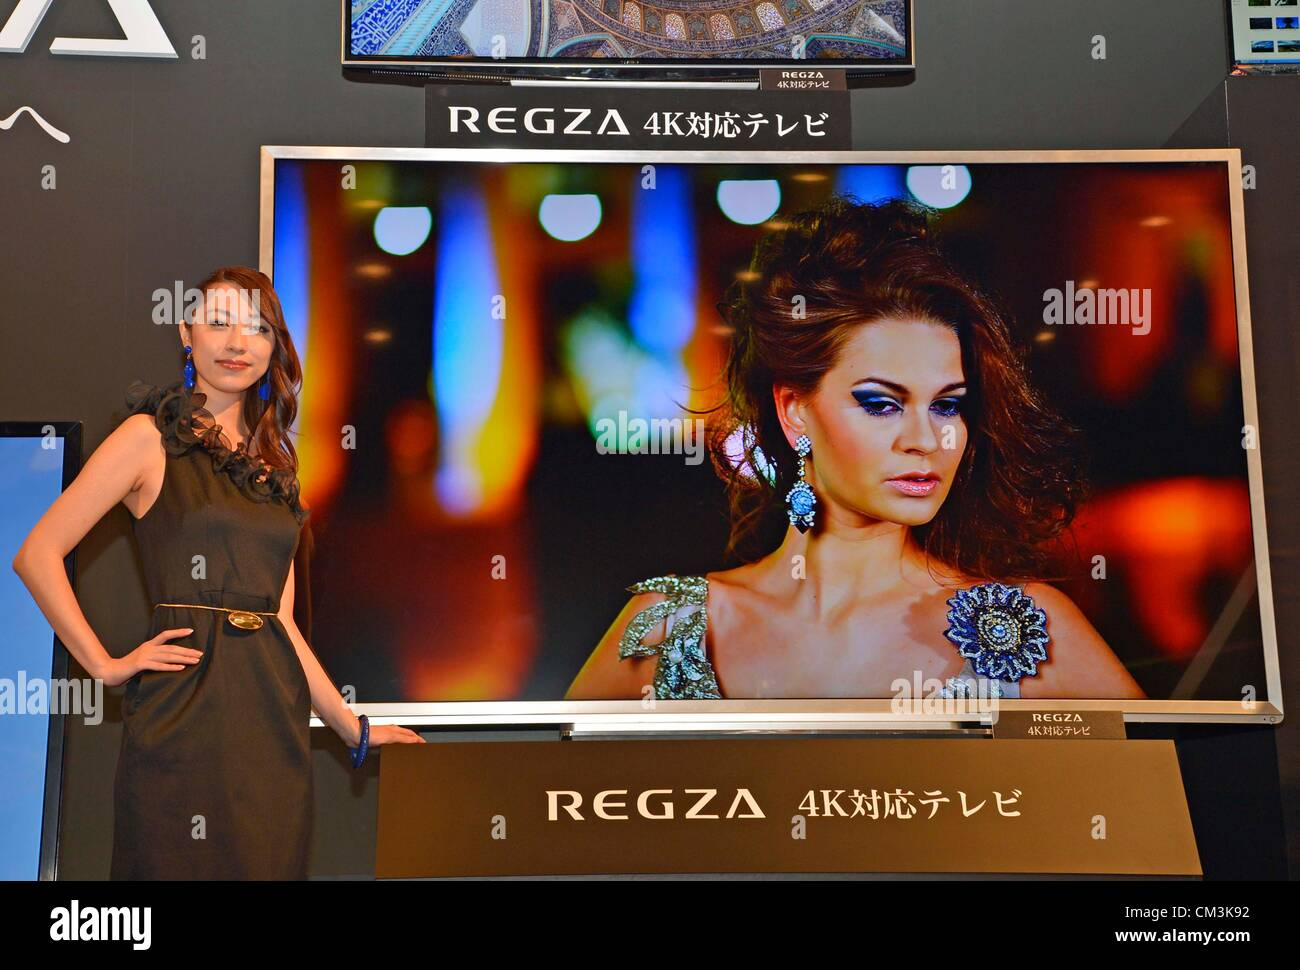 Model presents 84-inch Quad Full HD resolution TV at the